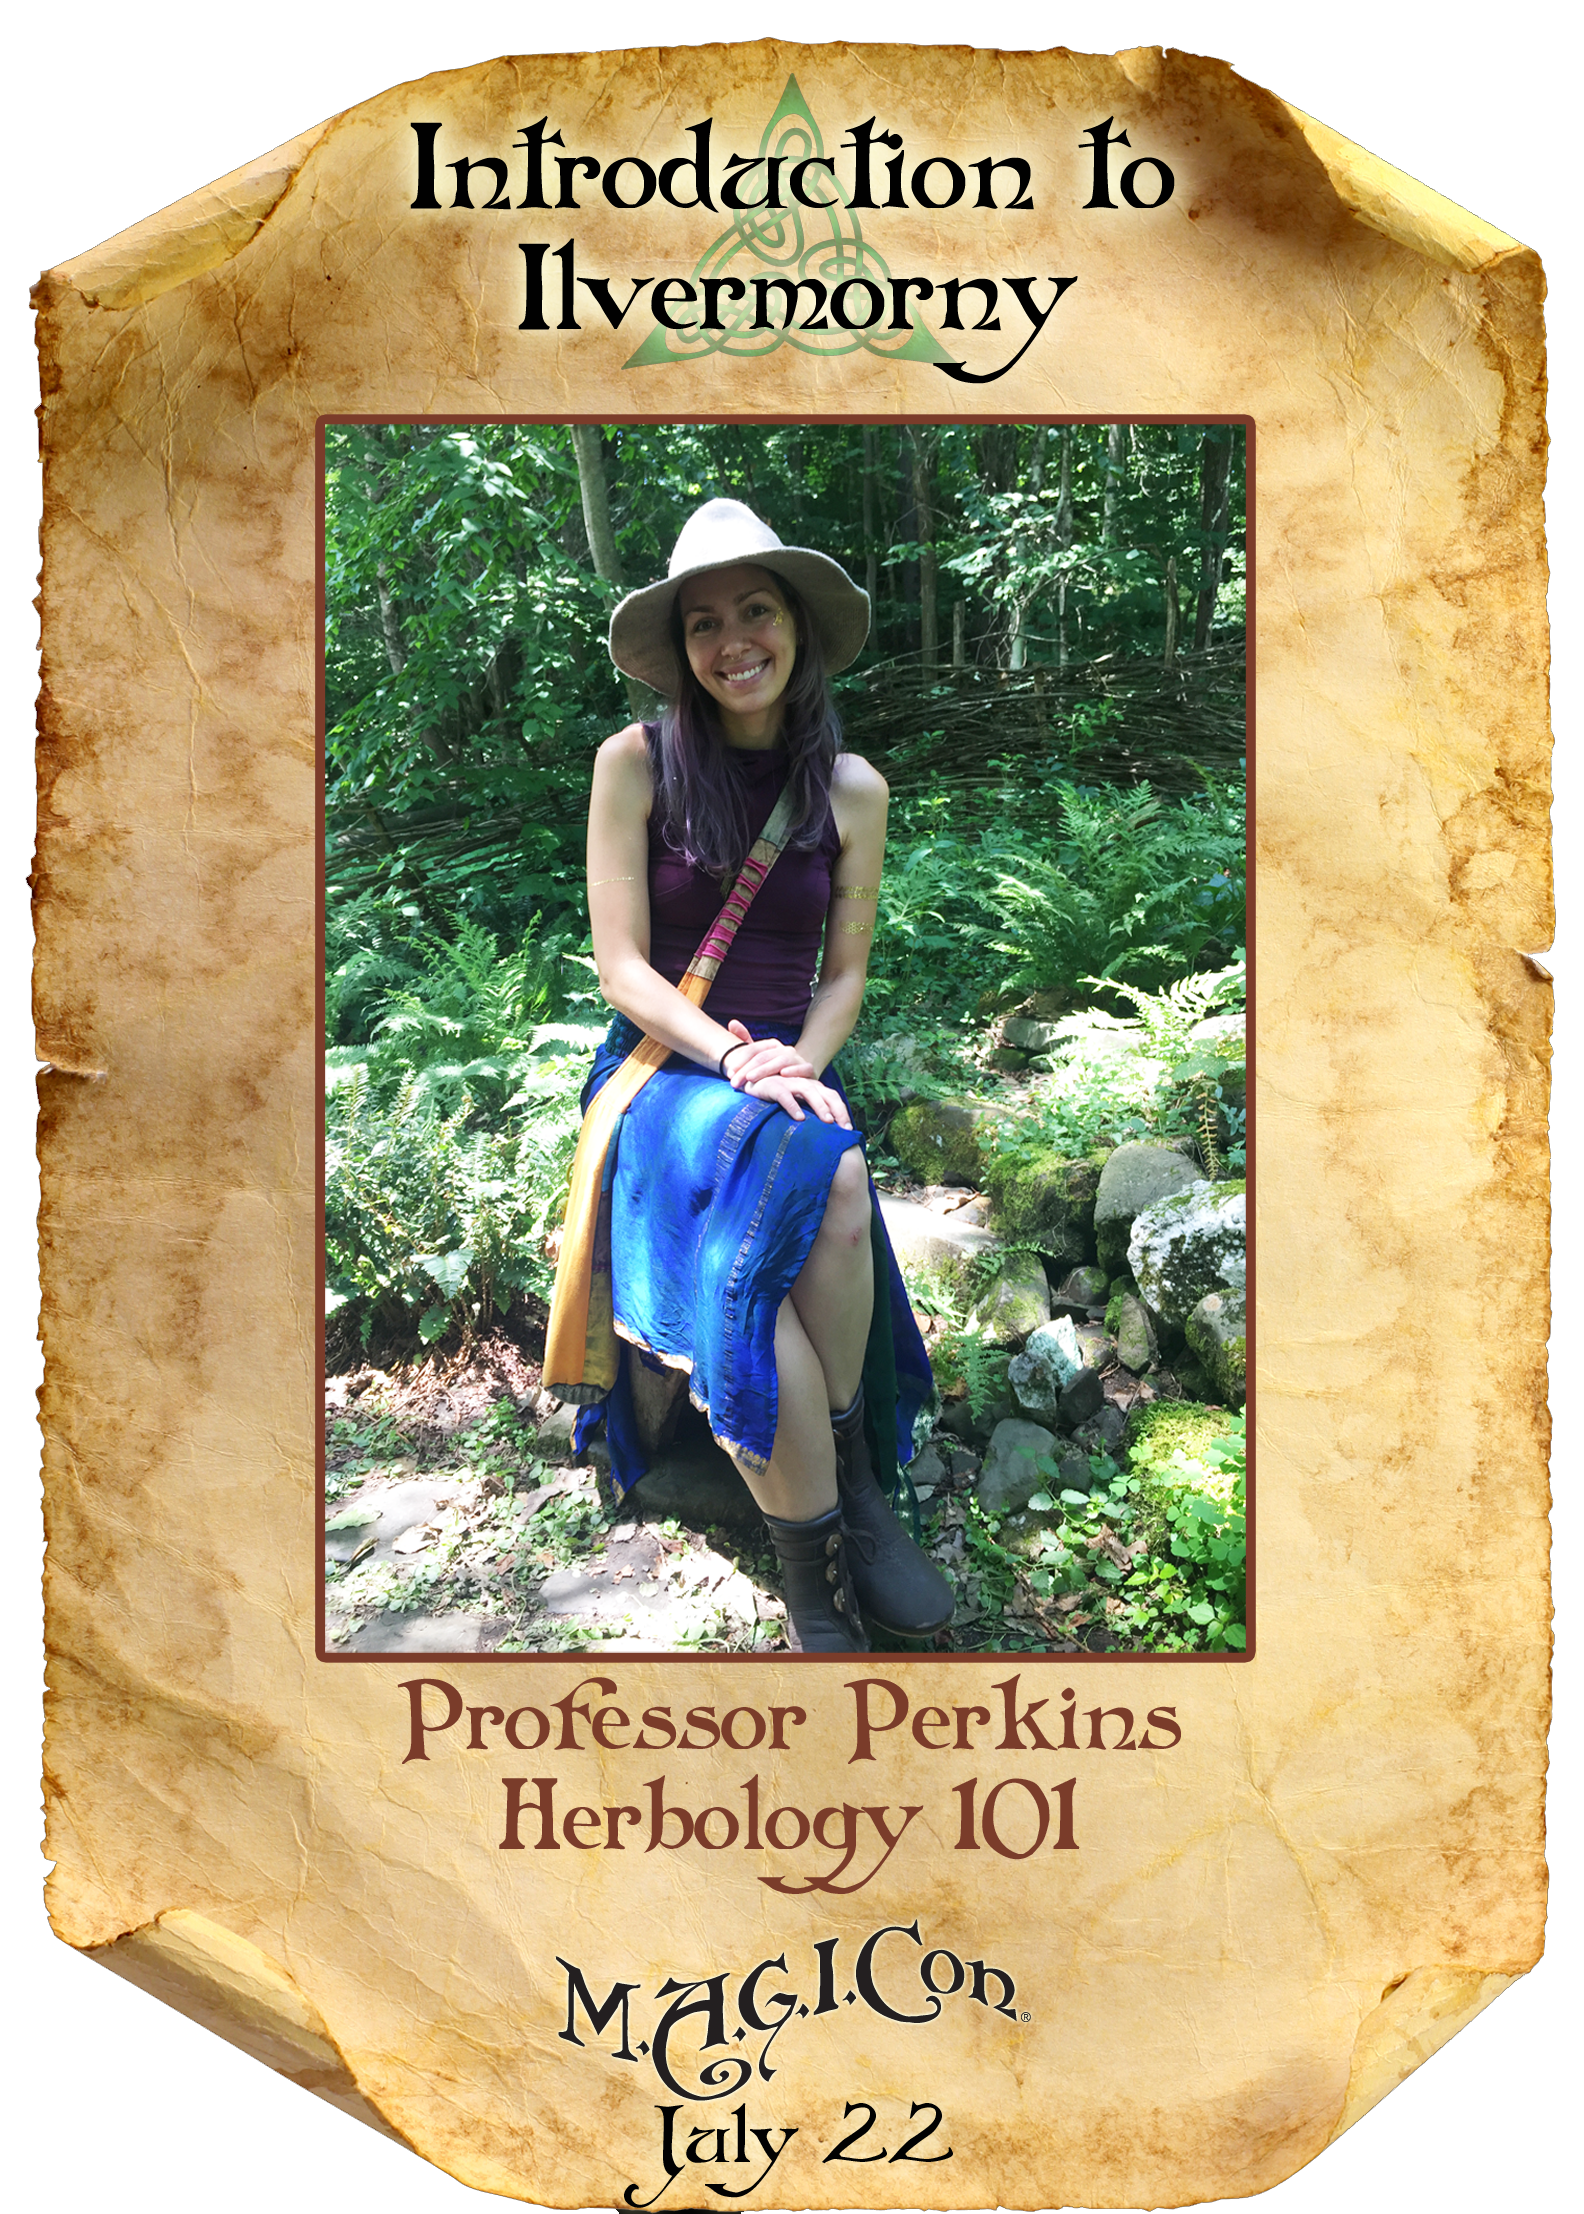 Professor Perkins - Herbology 101